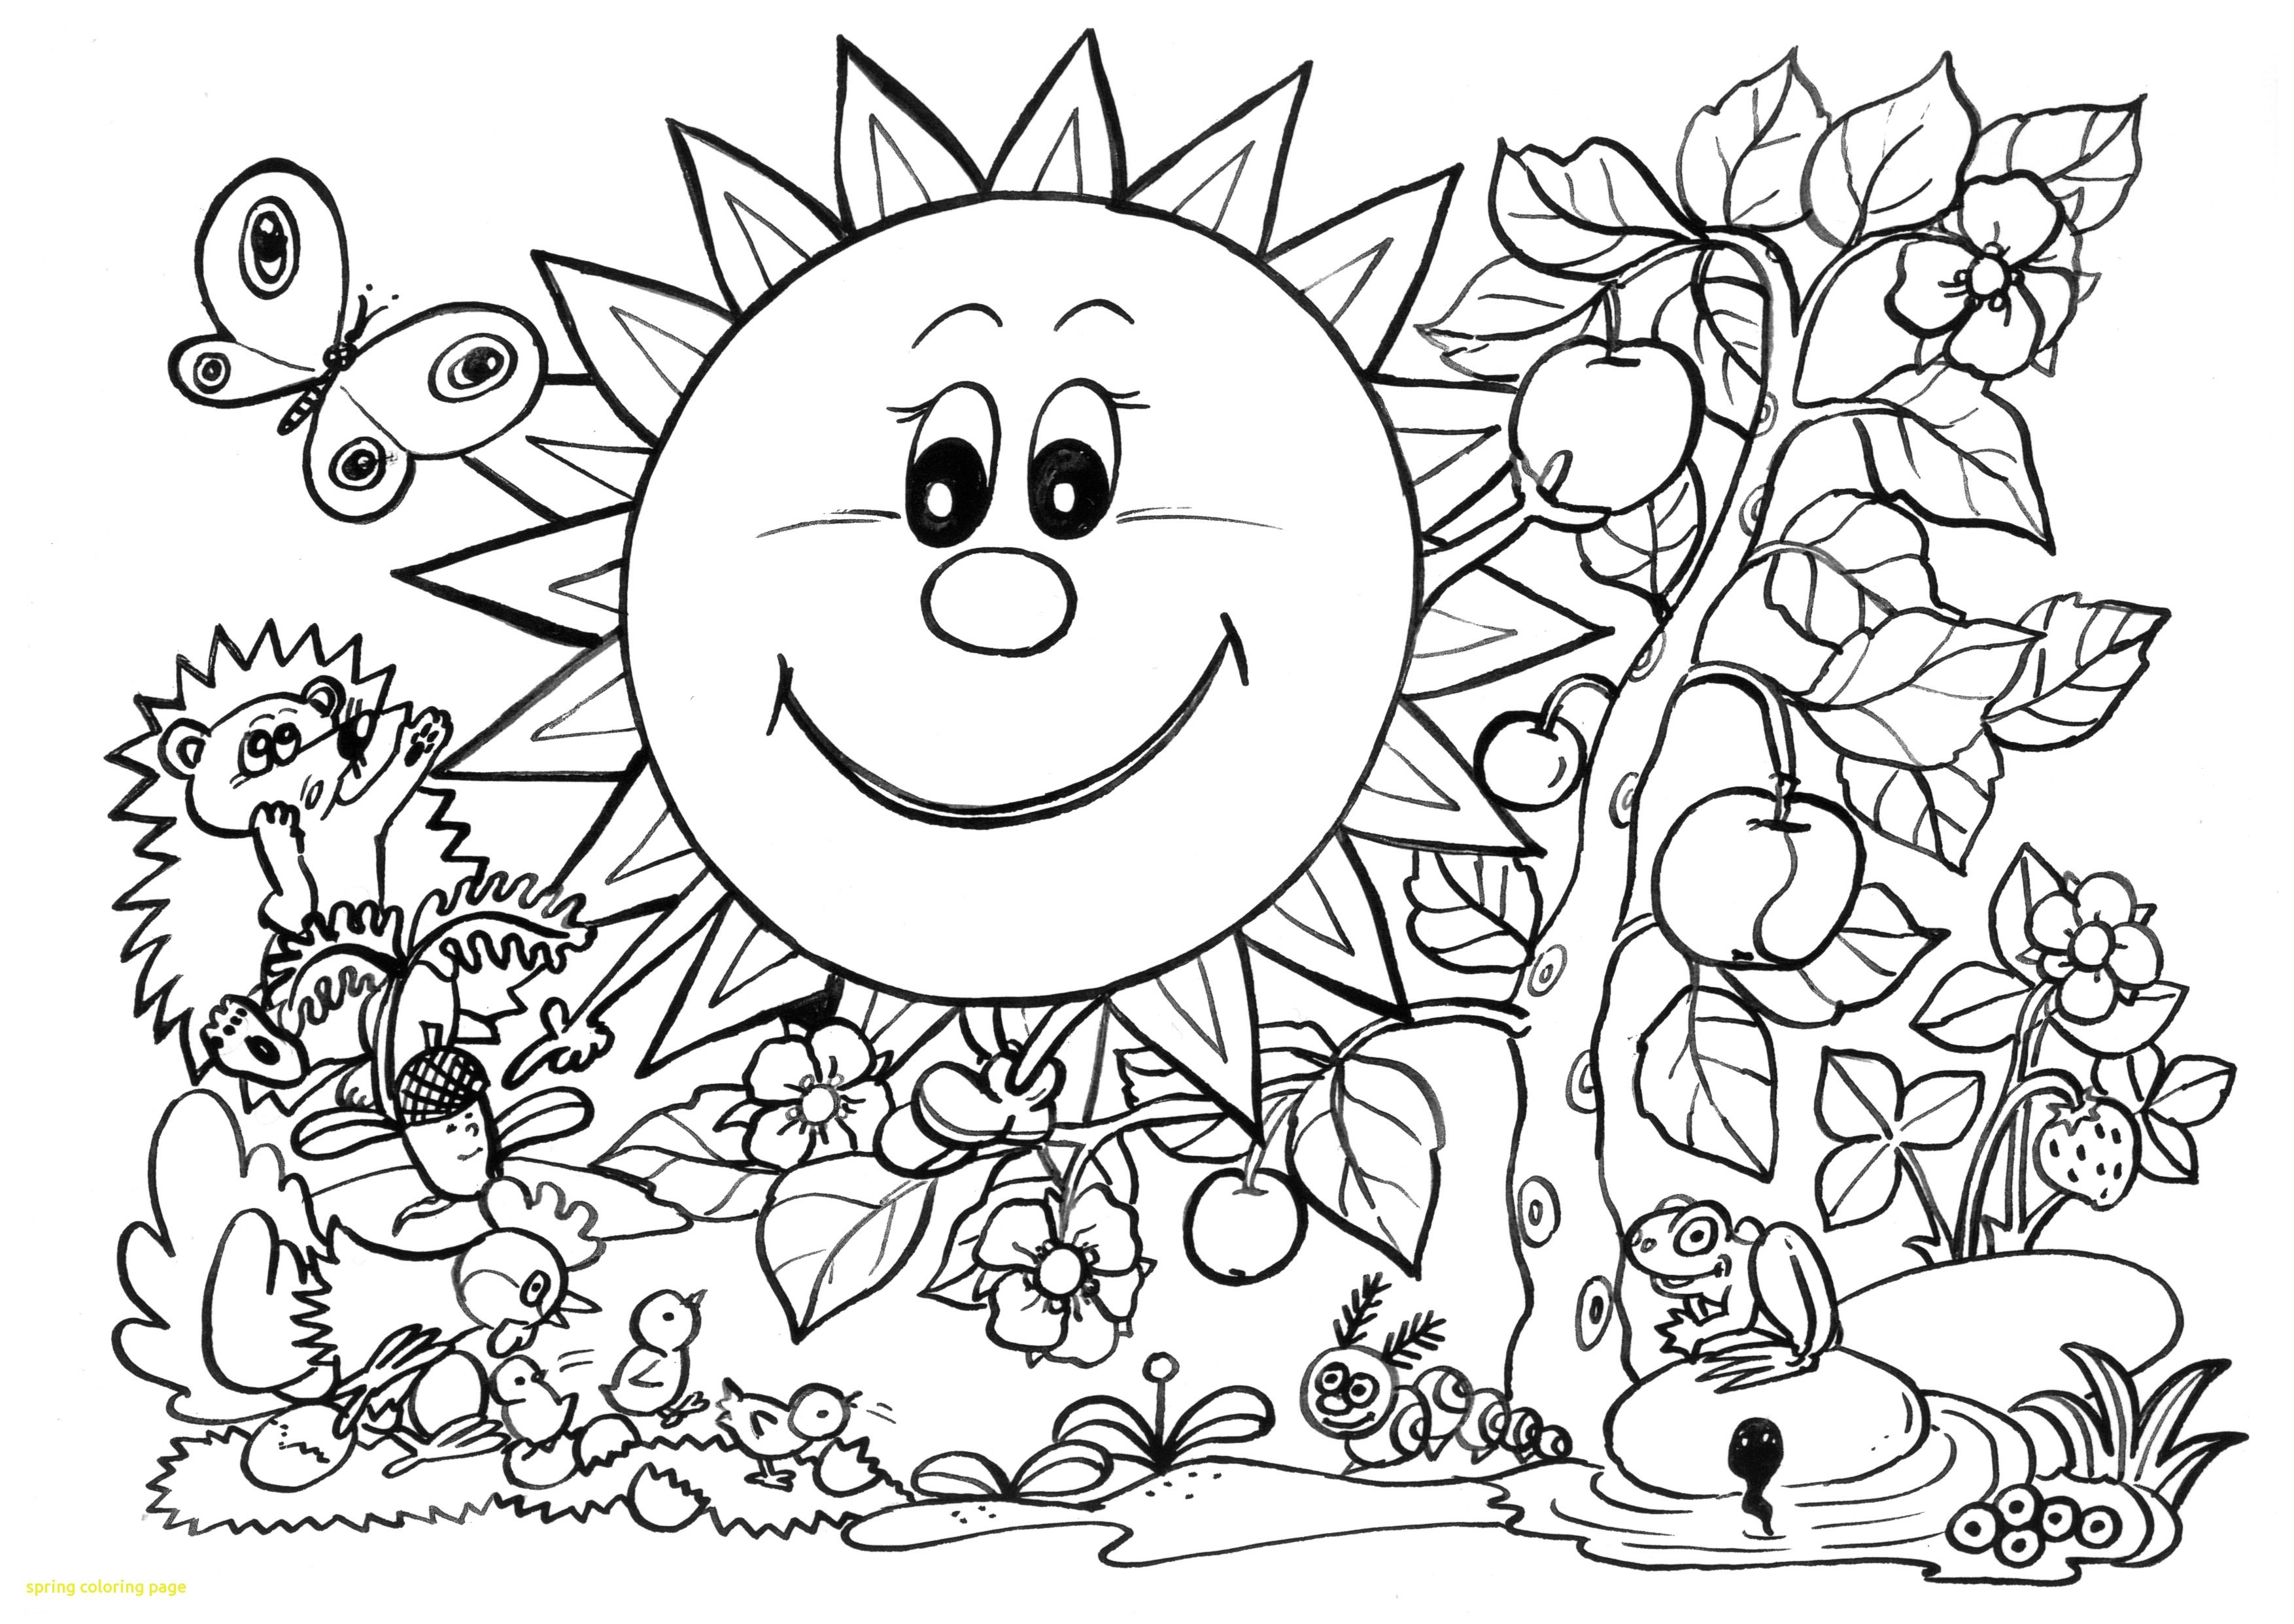 Coloring Ideas : Cute Spring Coloring Pages Unique Free Printable - Free Printable Spring Coloring Pages